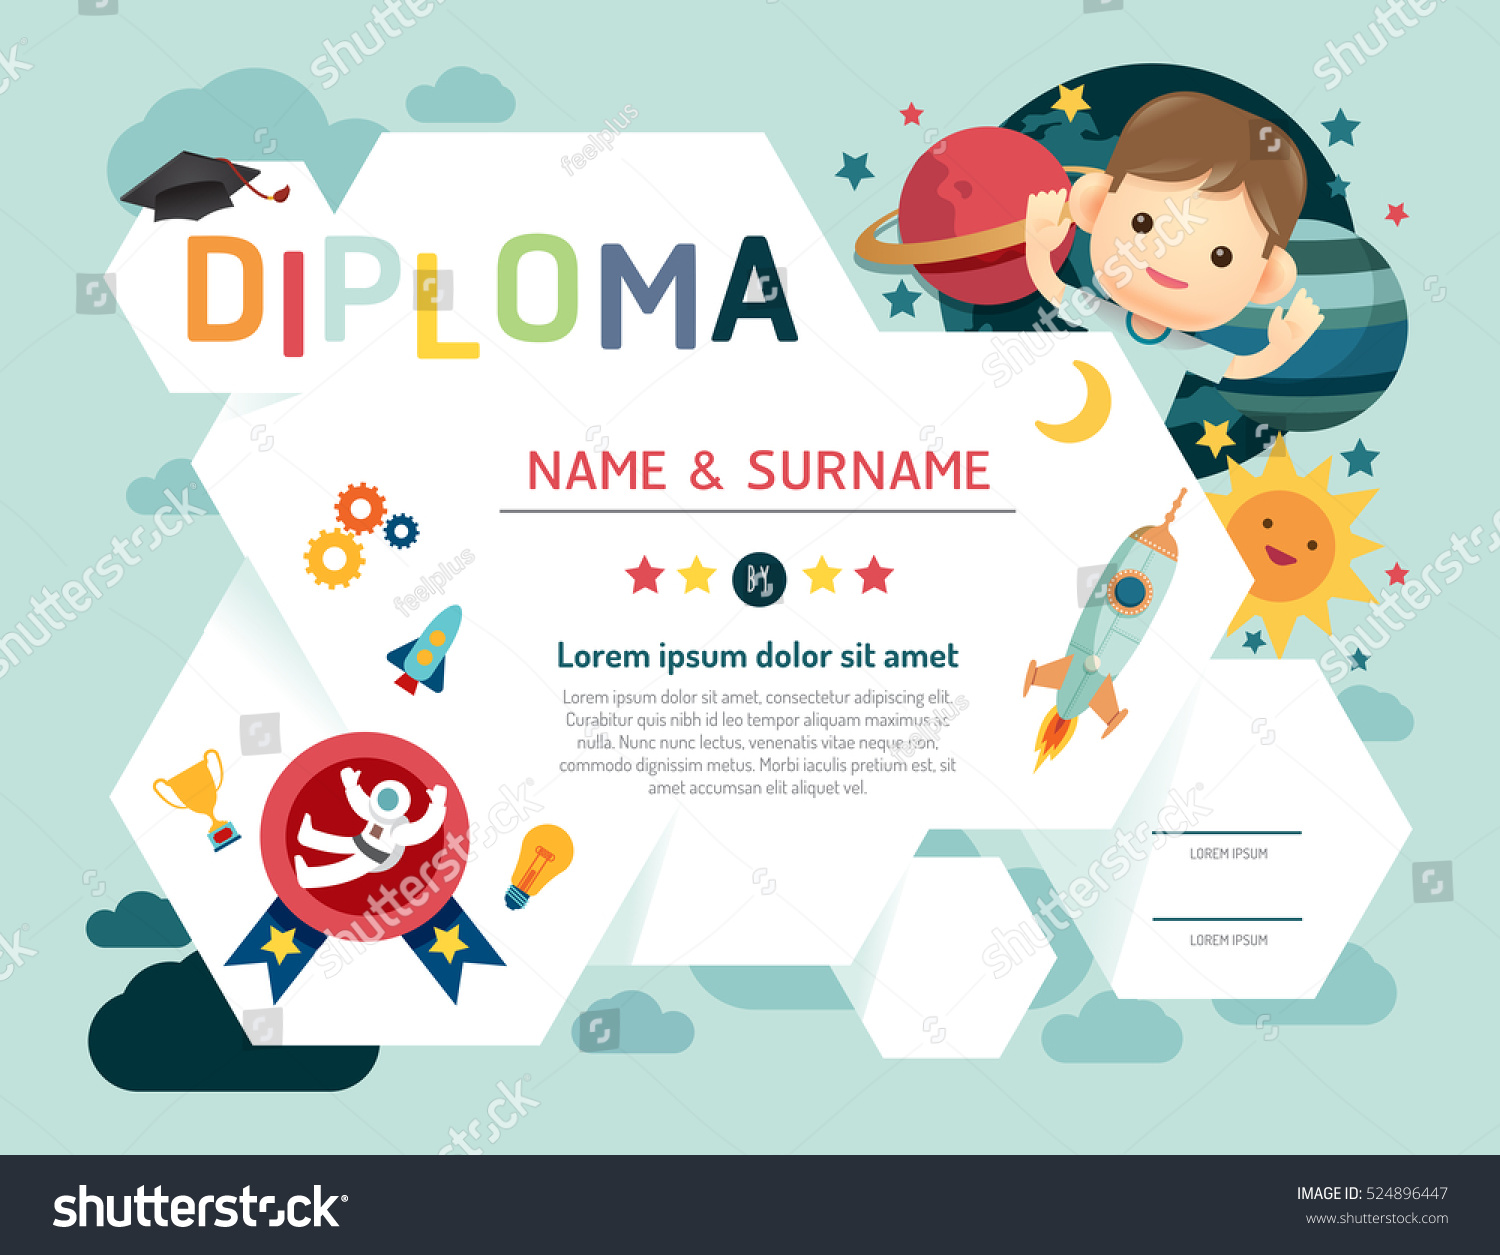 Certificate kids diploma, kindergarten template layout space background frame design vector. education preschool concept.